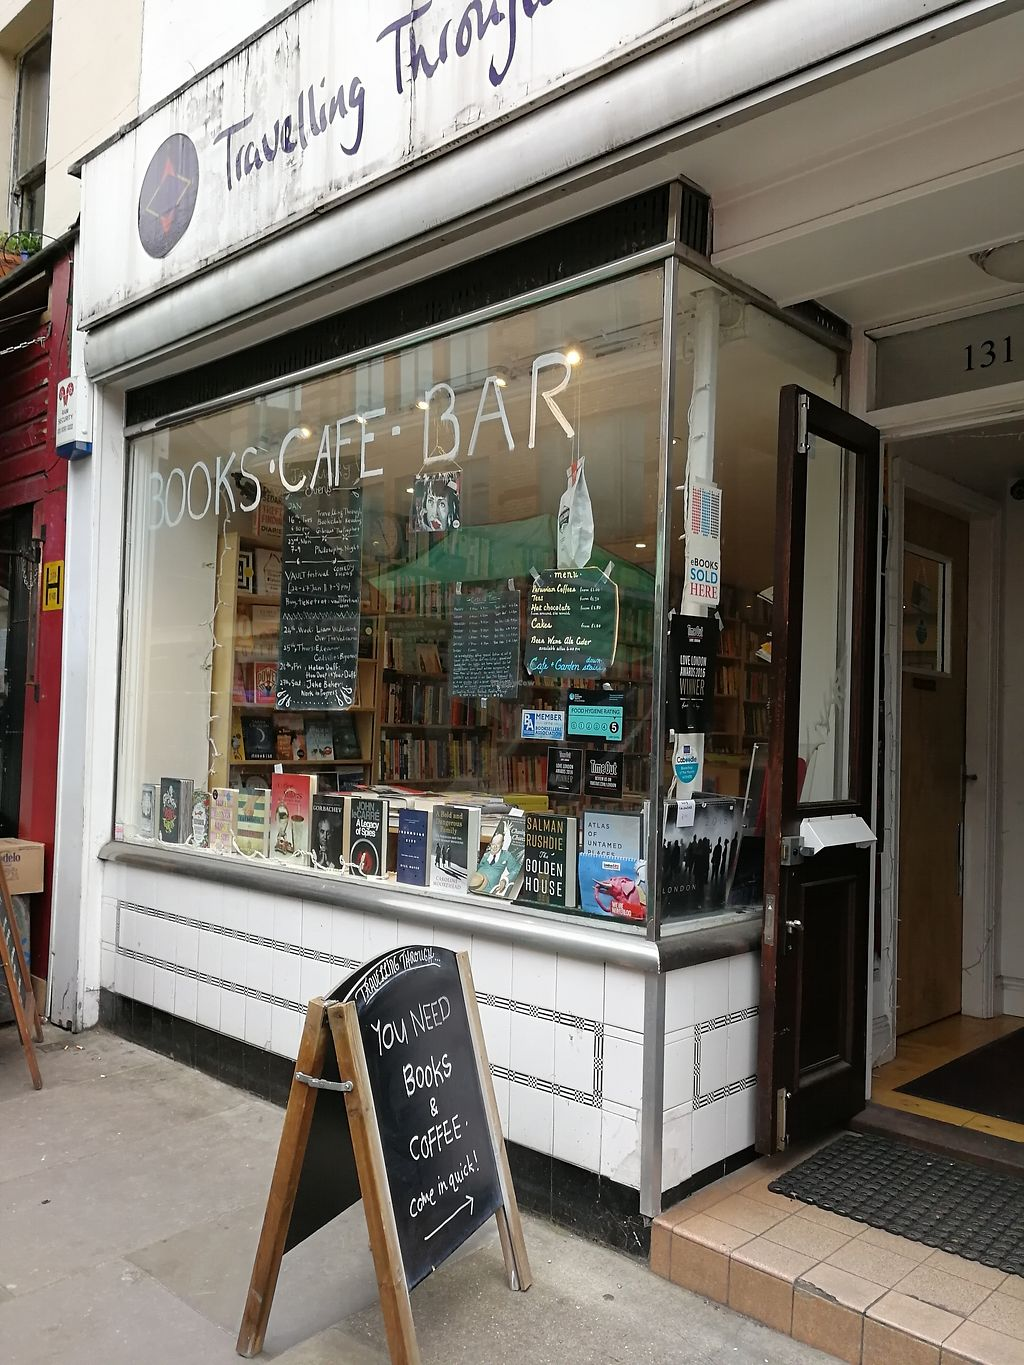 """Photo of Travelling Through  by <a href=""""/members/profile/DancingMillipede"""">DancingMillipede</a> <br/>entrance to the bookshop, go through and downstairs to find the cosy café :) <br/> March 11, 2018  - <a href='/contact/abuse/image/113991/369454'>Report</a>"""